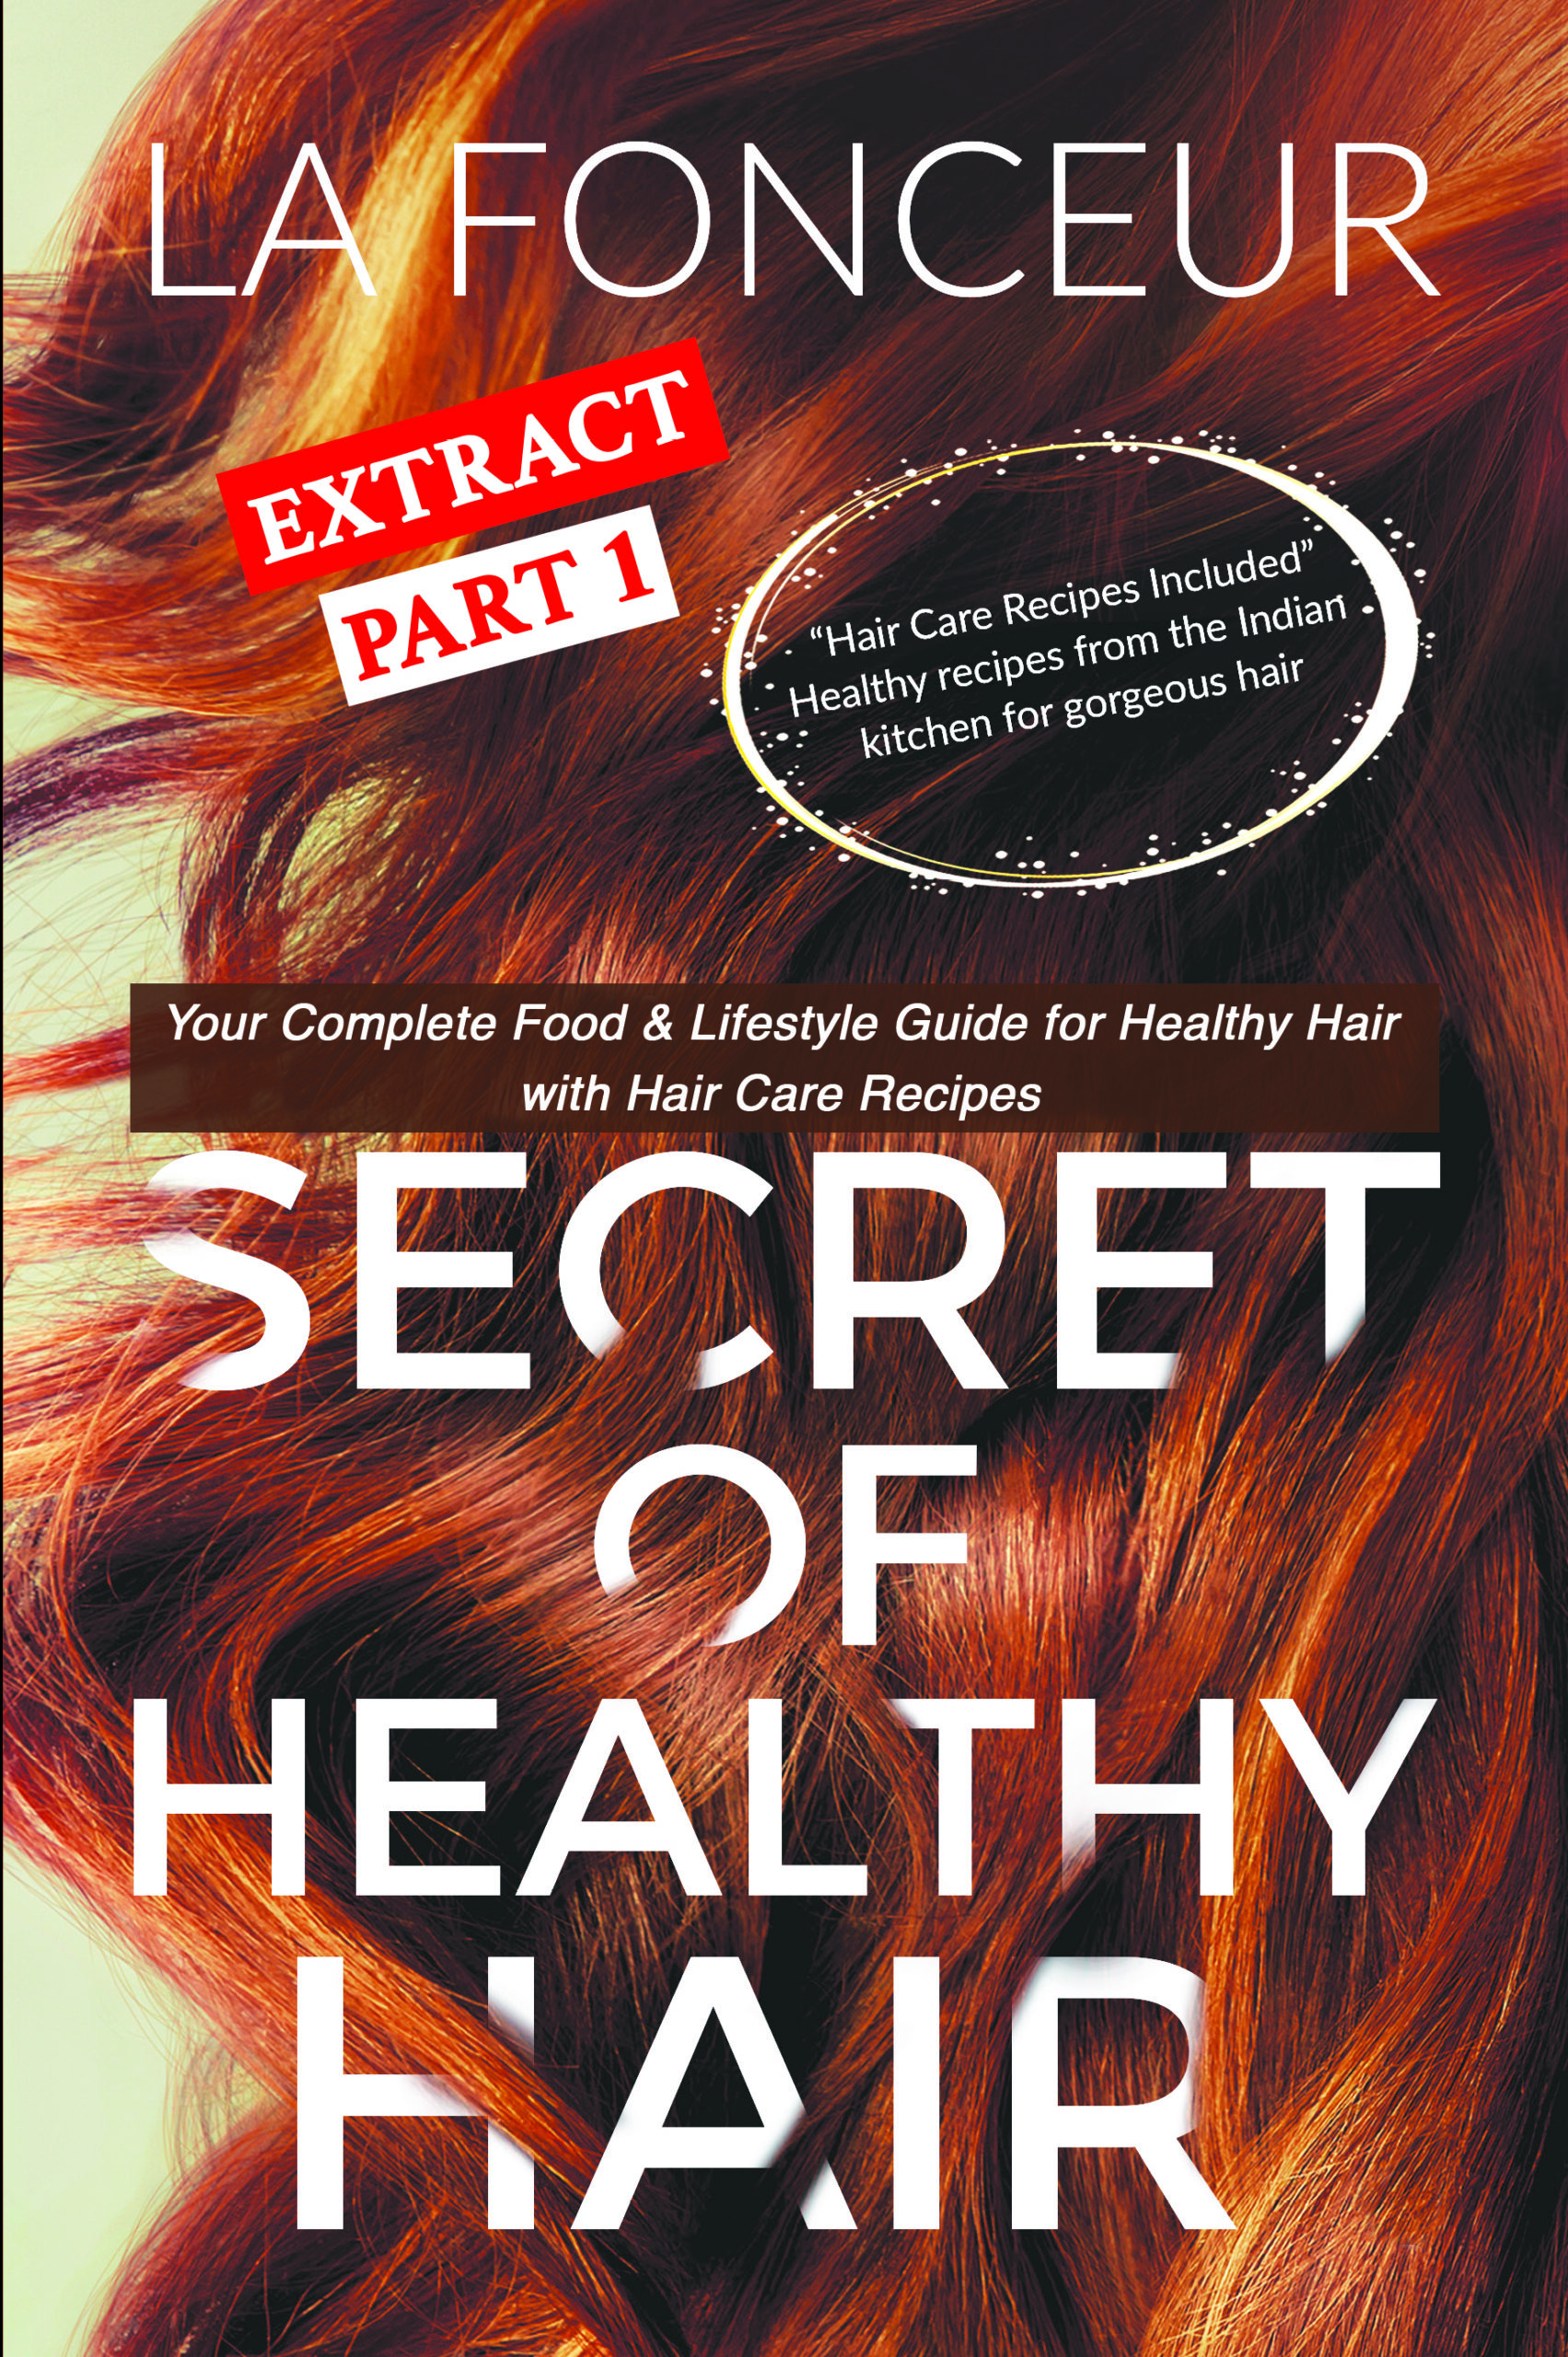 SECRET-OF-HEALTHY-HAIR-Extract-Part-1_frontcover.jpg